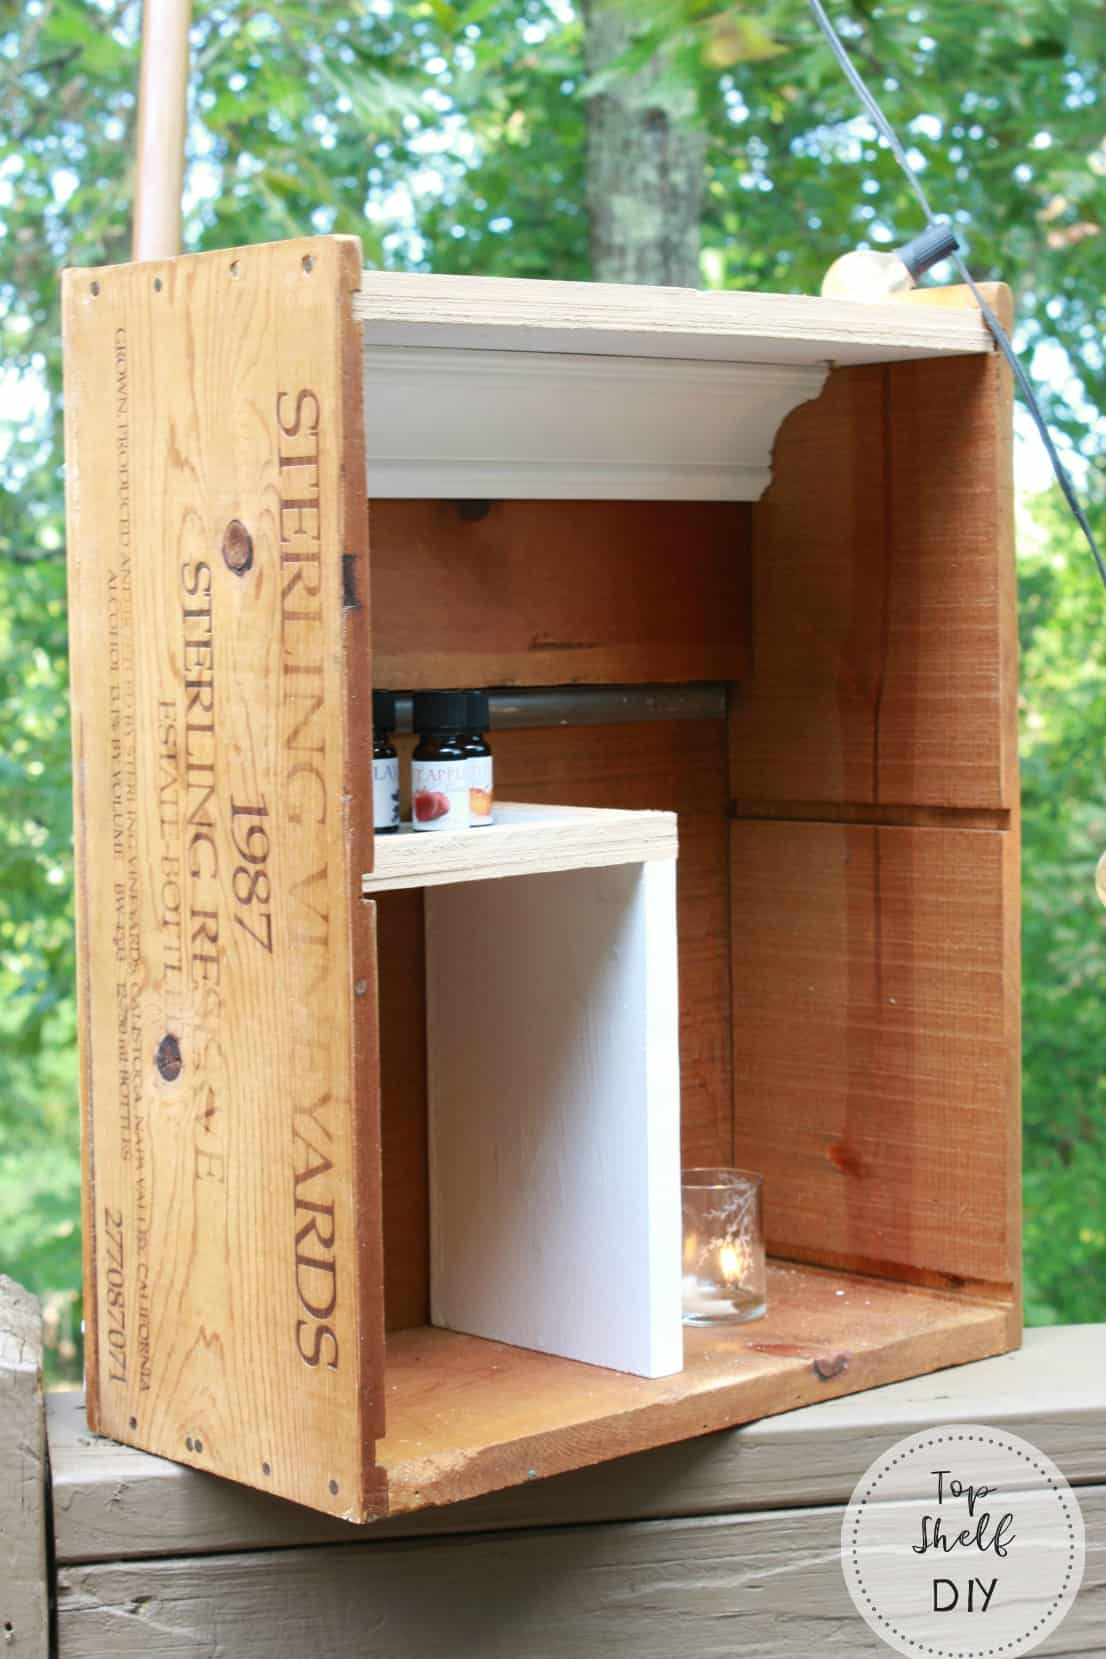 Make this shelf for essential oil storage from an old wine crate! Cheap, practical, and fun.